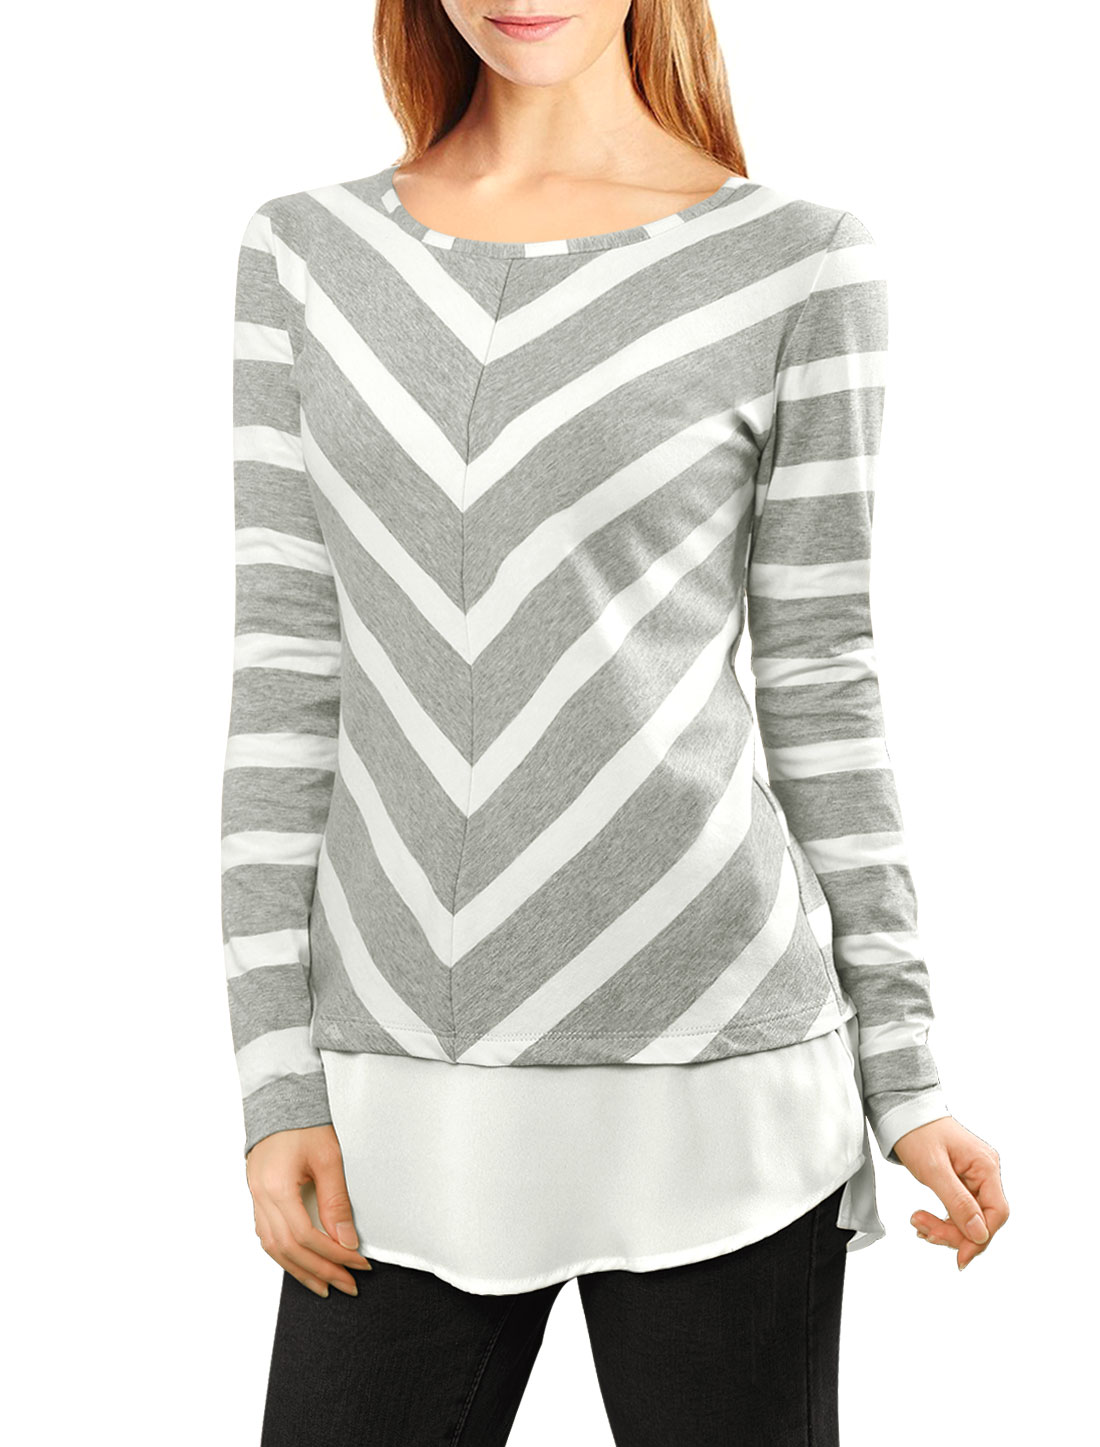 Women Layered Tunic Top in Striped and Chevron Print Gray M